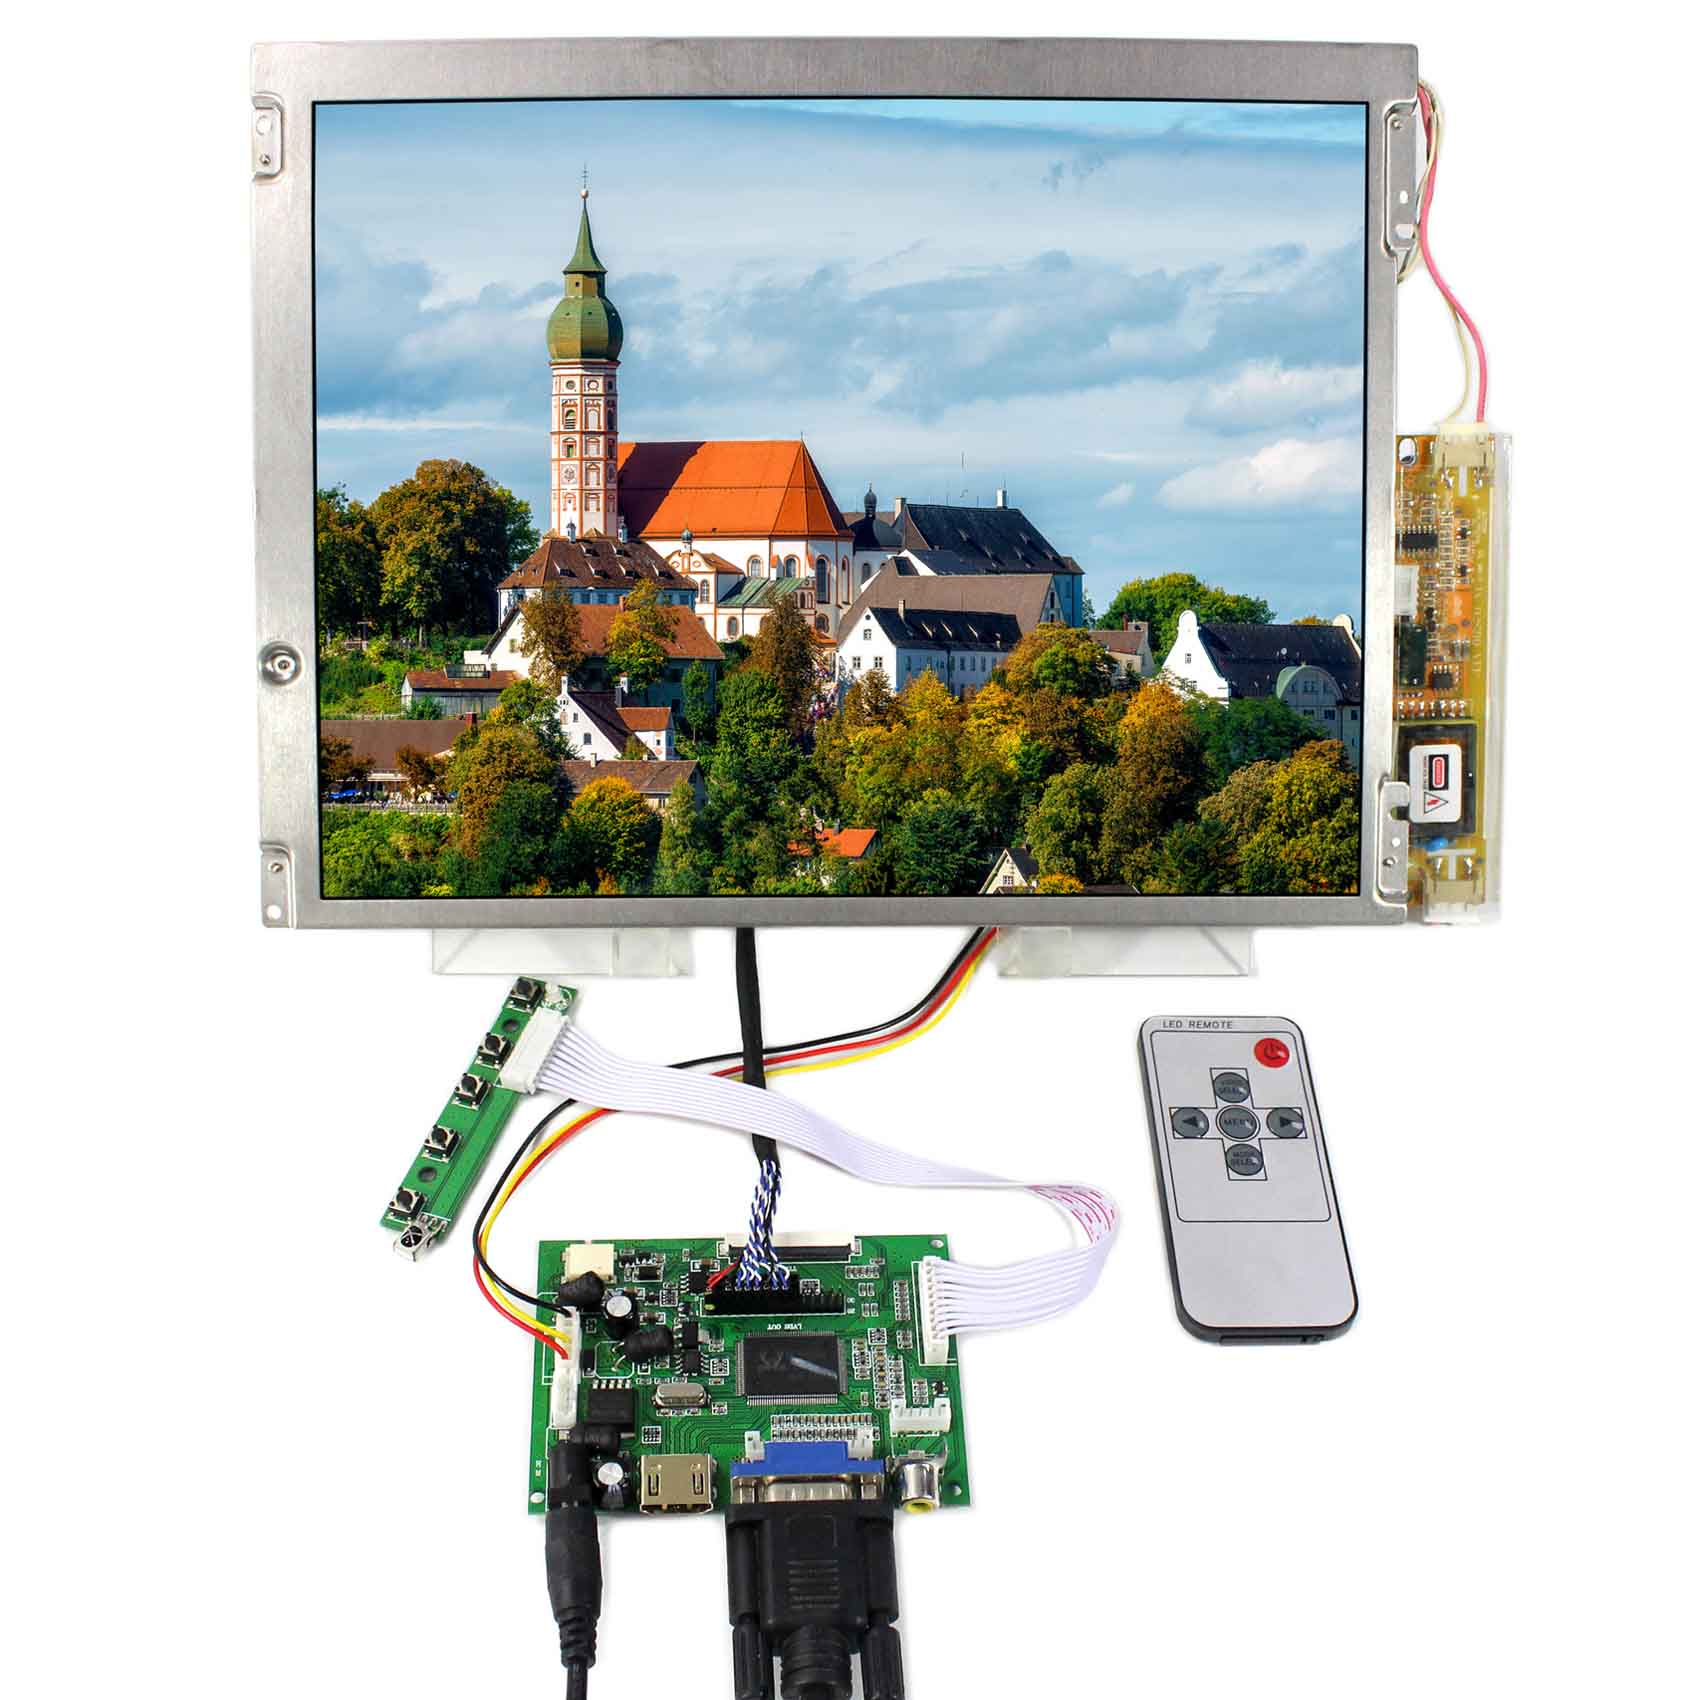 HDMI VGA 2AV LCD Controller Board 20pins LVDS Connector Backlight 2 CCFL VS-TY2662-V1 LQ121S1LG45 800X600 Resolution hdmi vga 2av lcd lvds board lp140wh4 tla1 lvds cable remote control and receiver osd keypad with cable